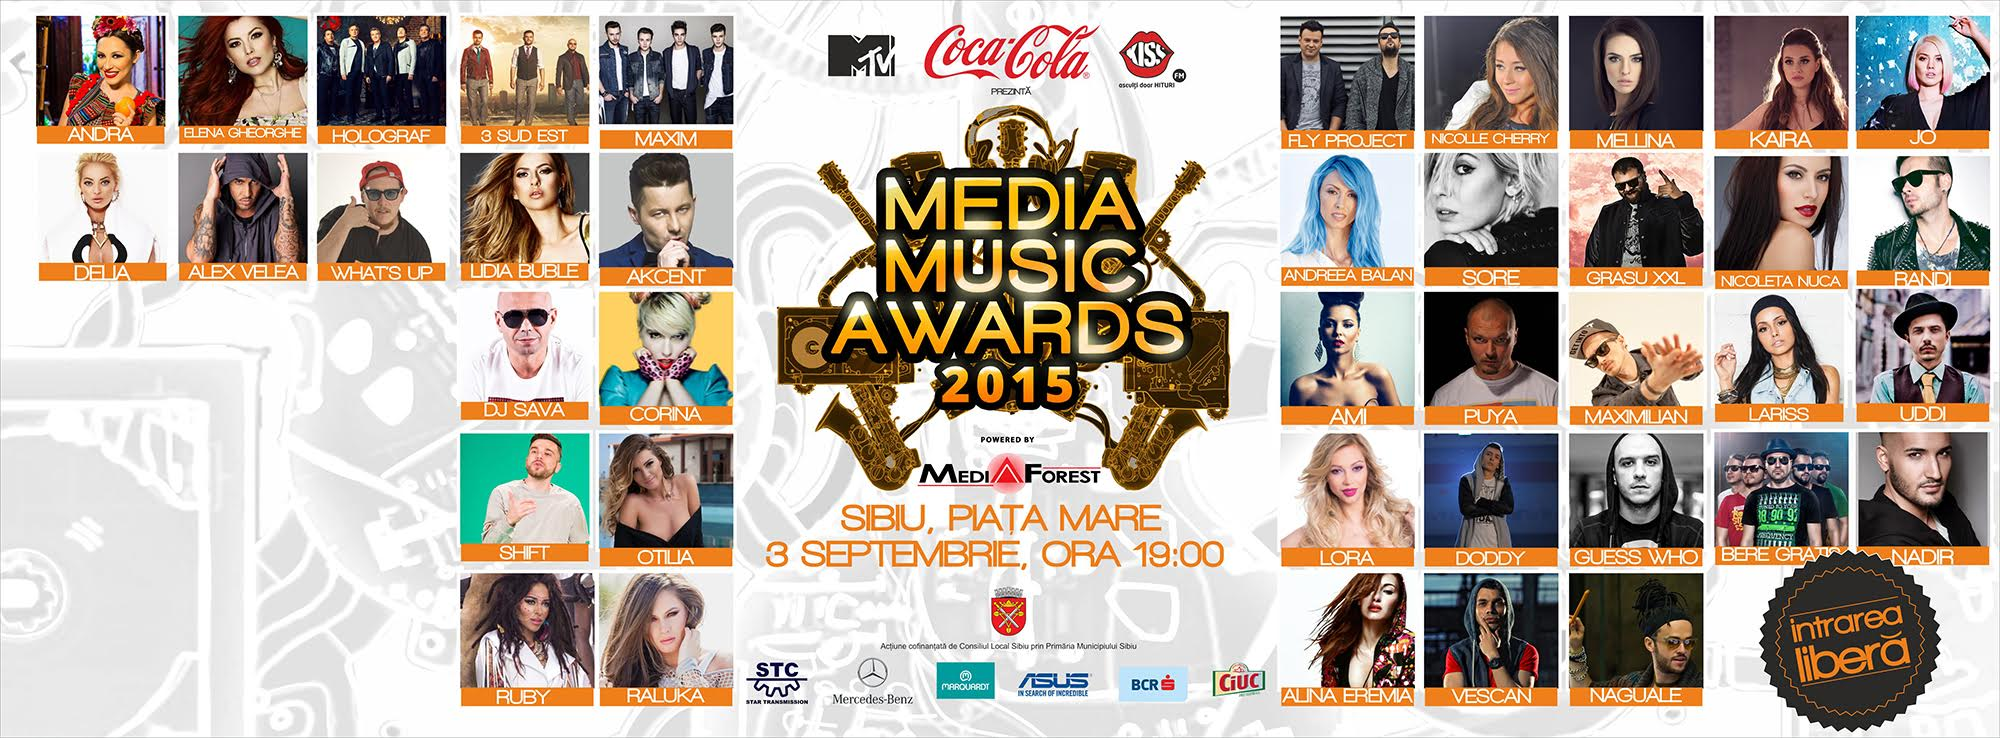 Media Music Awards 2015